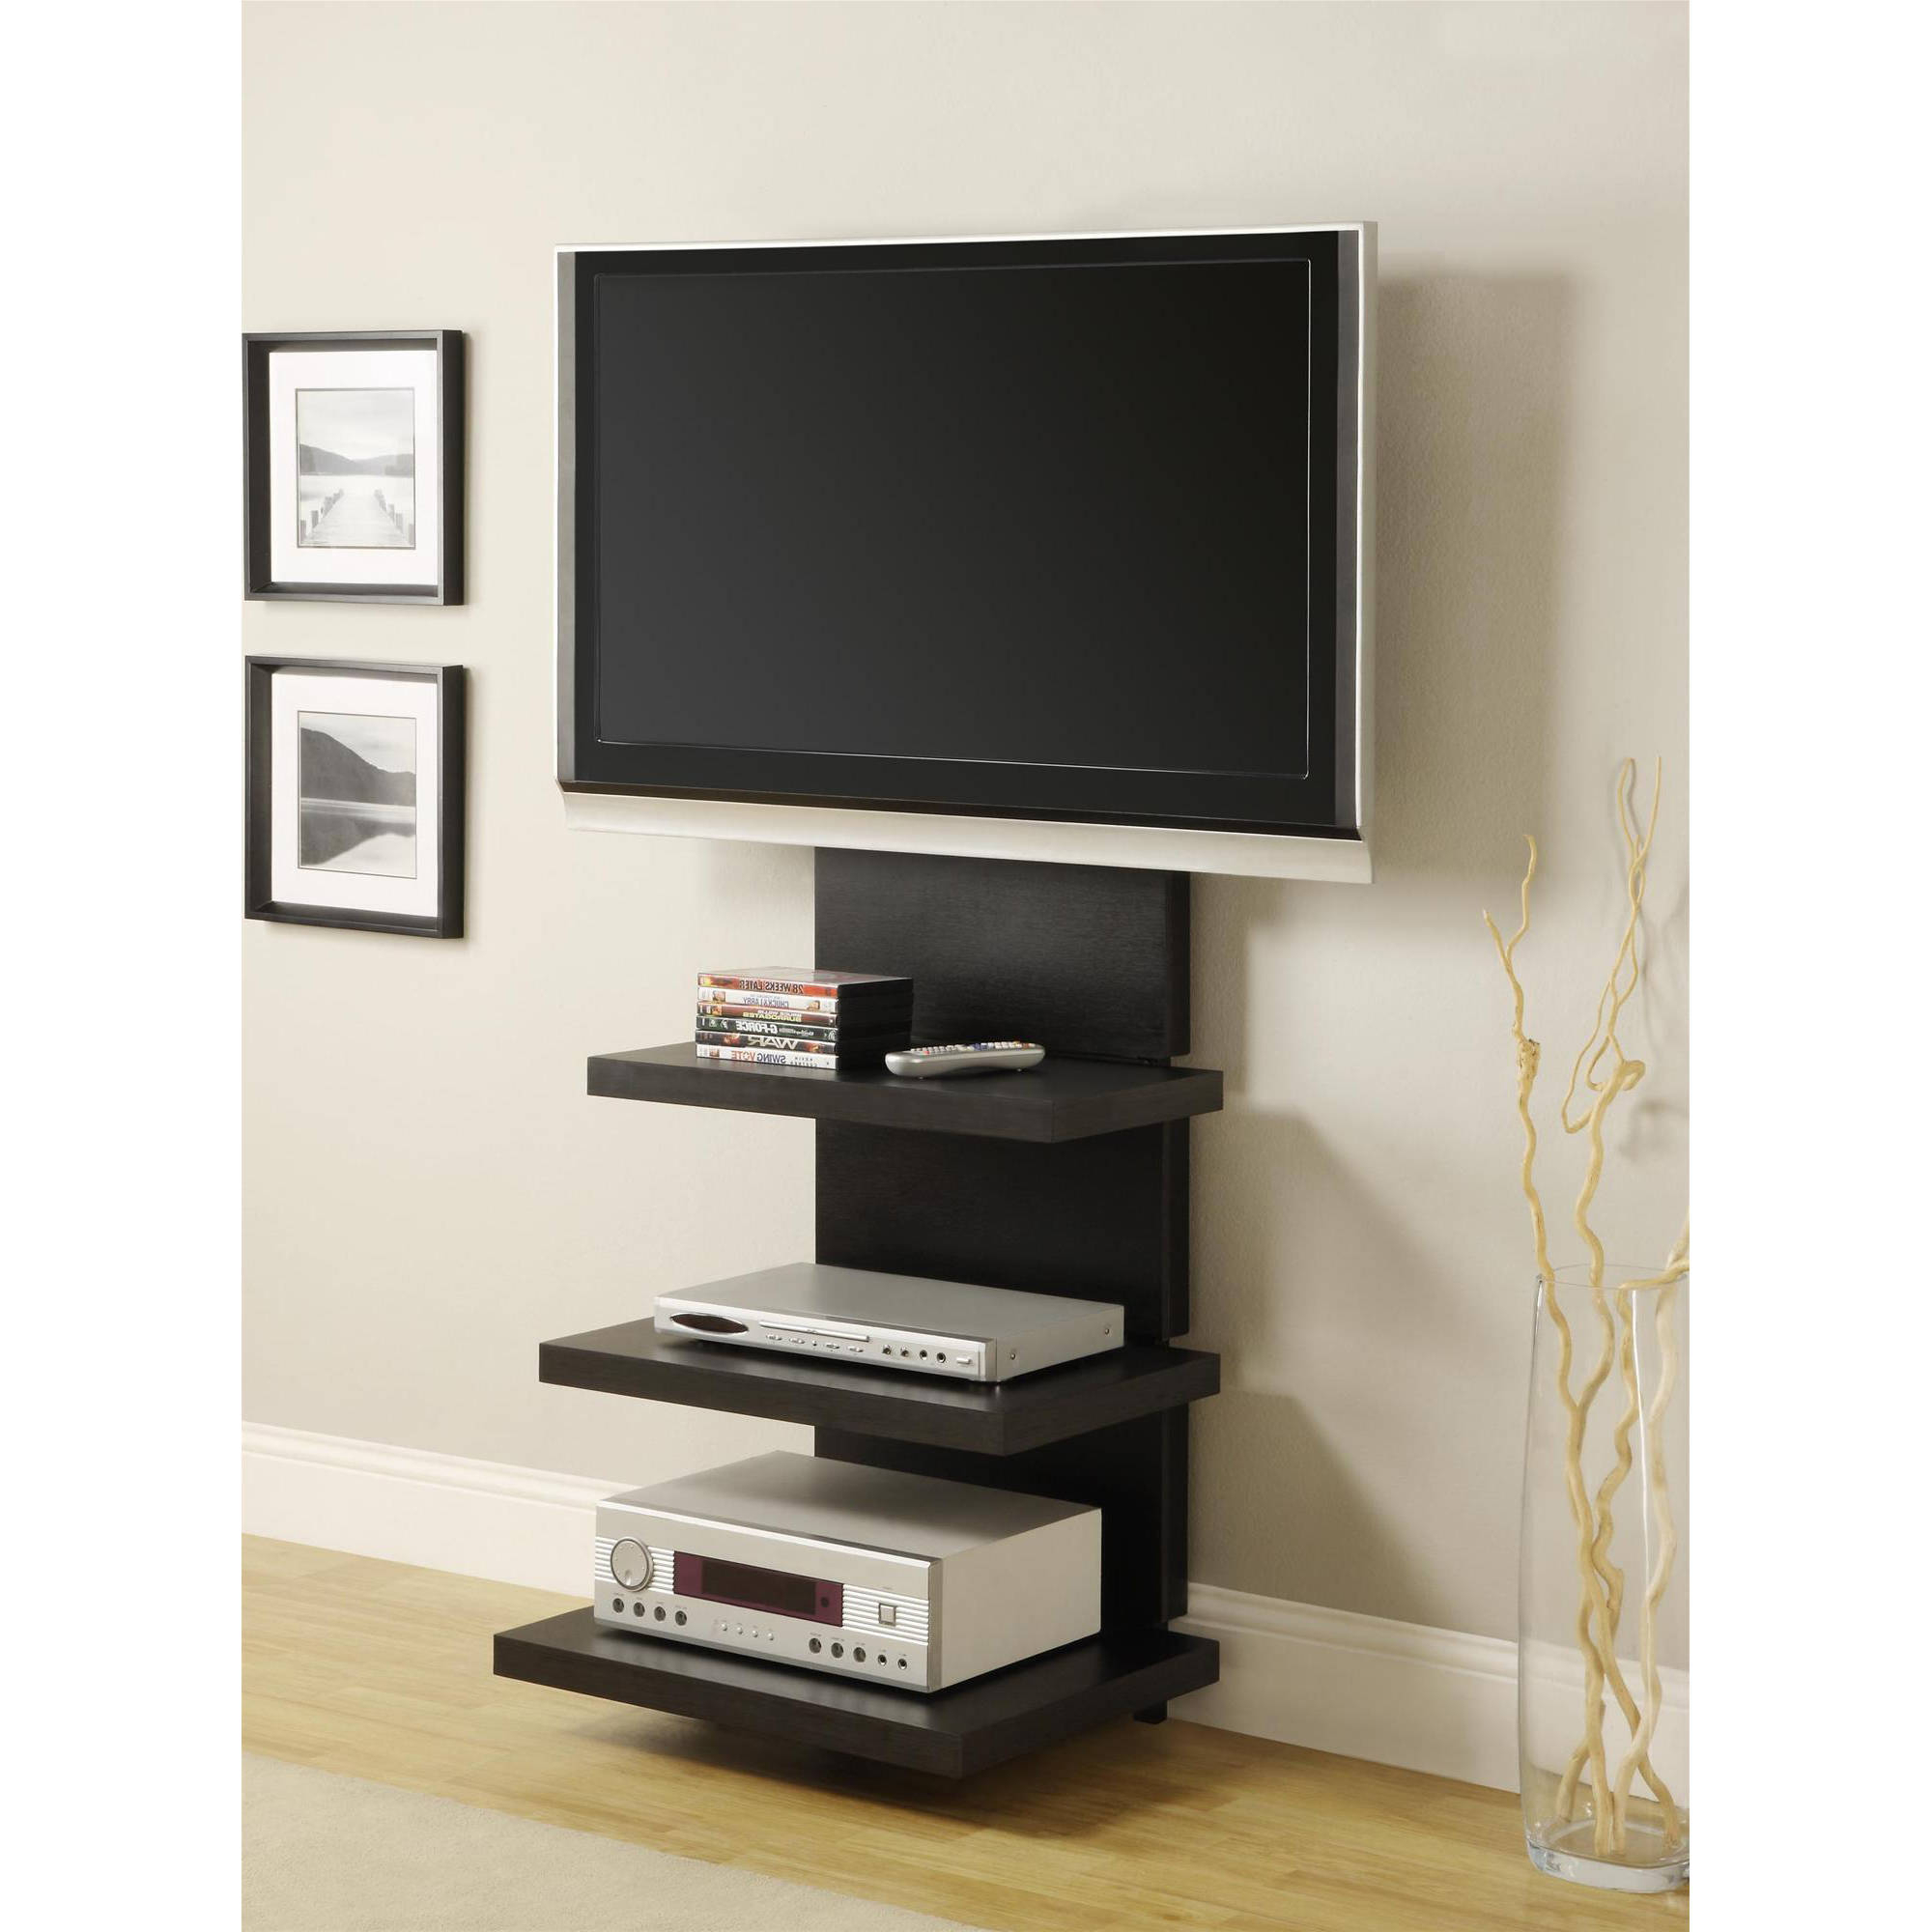 "Preferred Ameriwood Home Elevation Altramount Tv Stand For Tvs Up To 60"" Wide Intended For Flat Screen Tv Stands Corner Units (Gallery 20 of 20)"